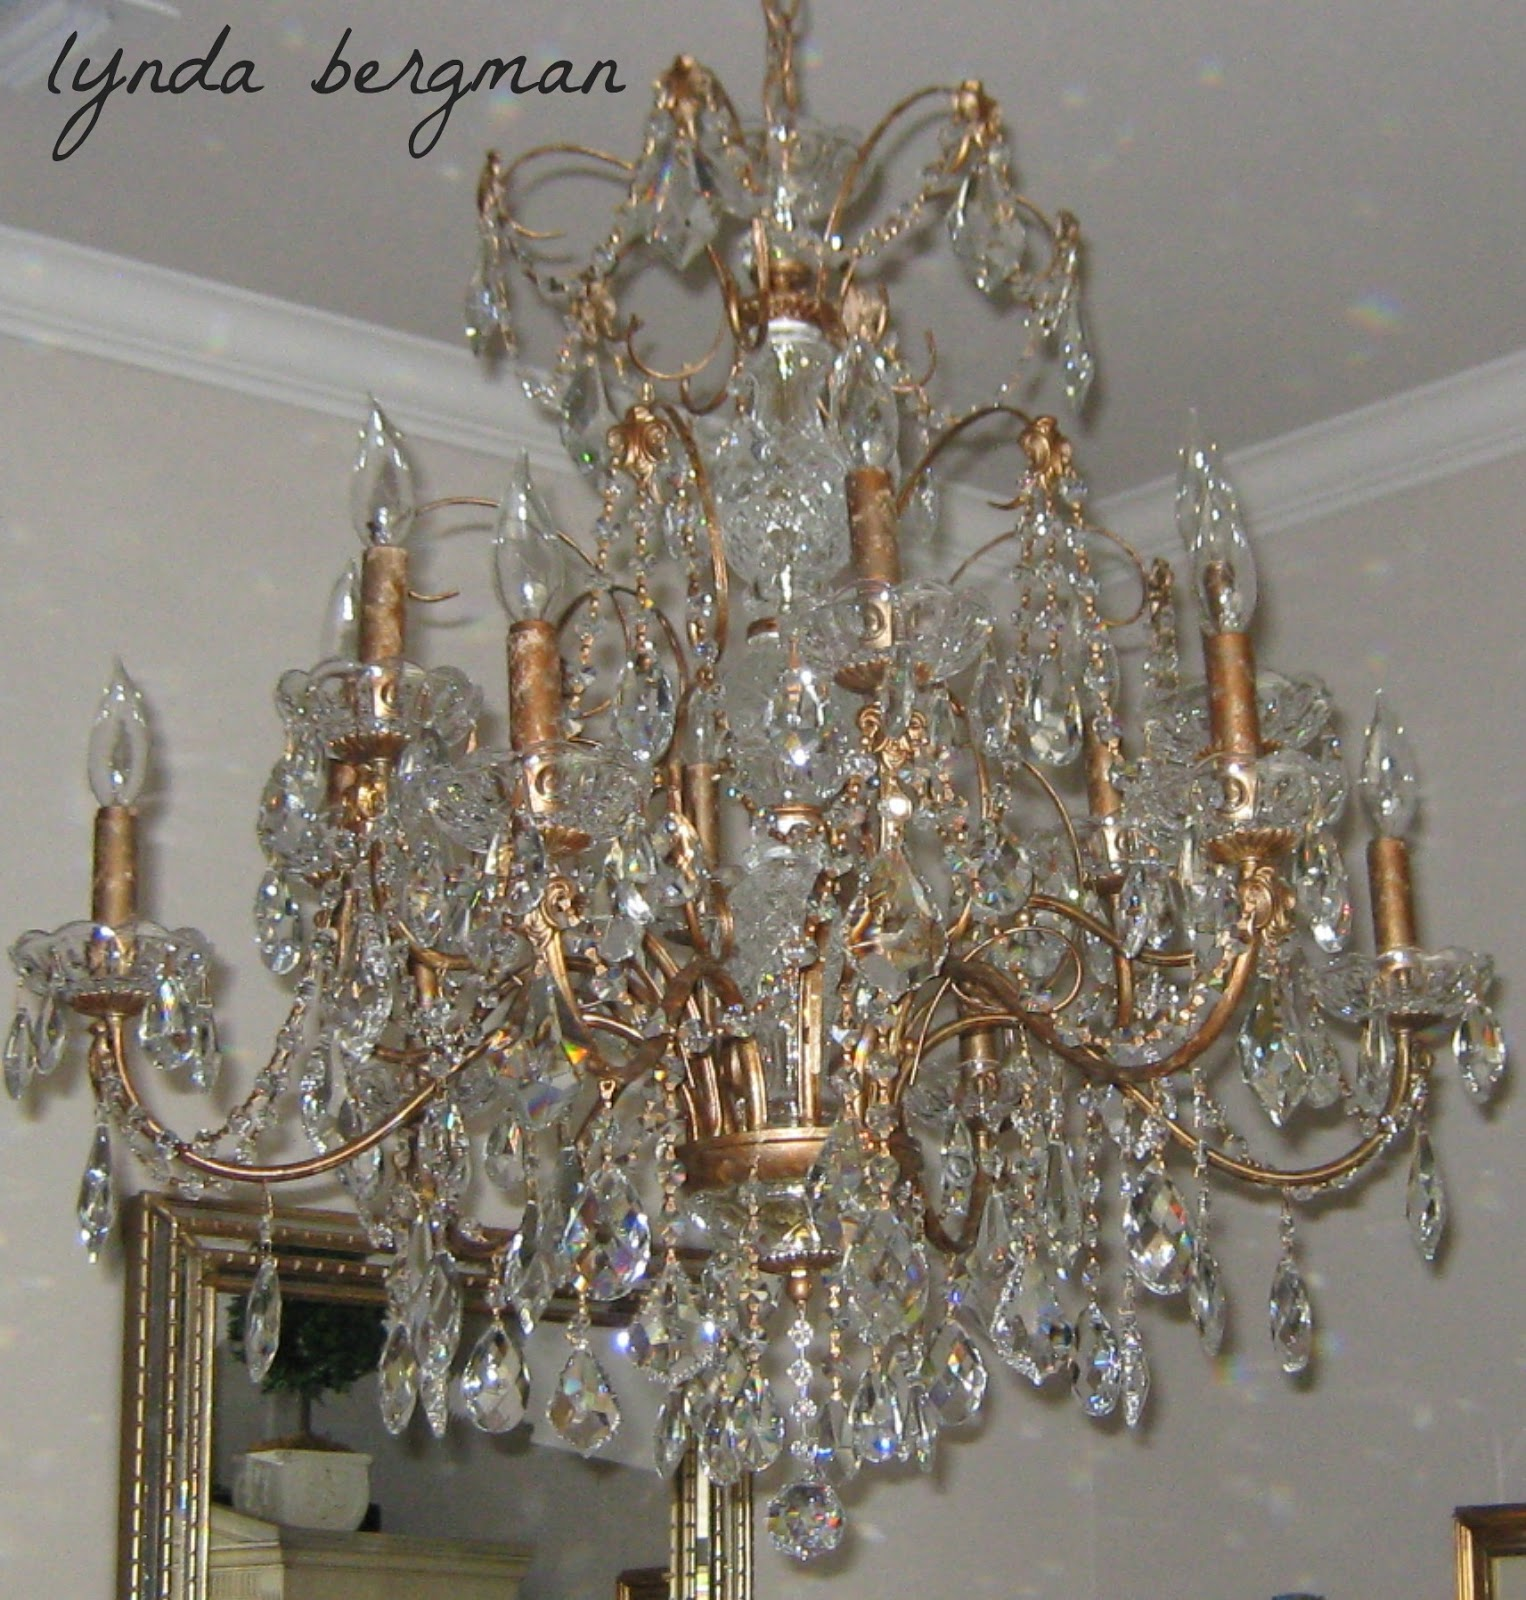 LYNDA BERGMAN DECORATIVE ARTISAN PAINTING A BEAUTIFUL CHANDELIER